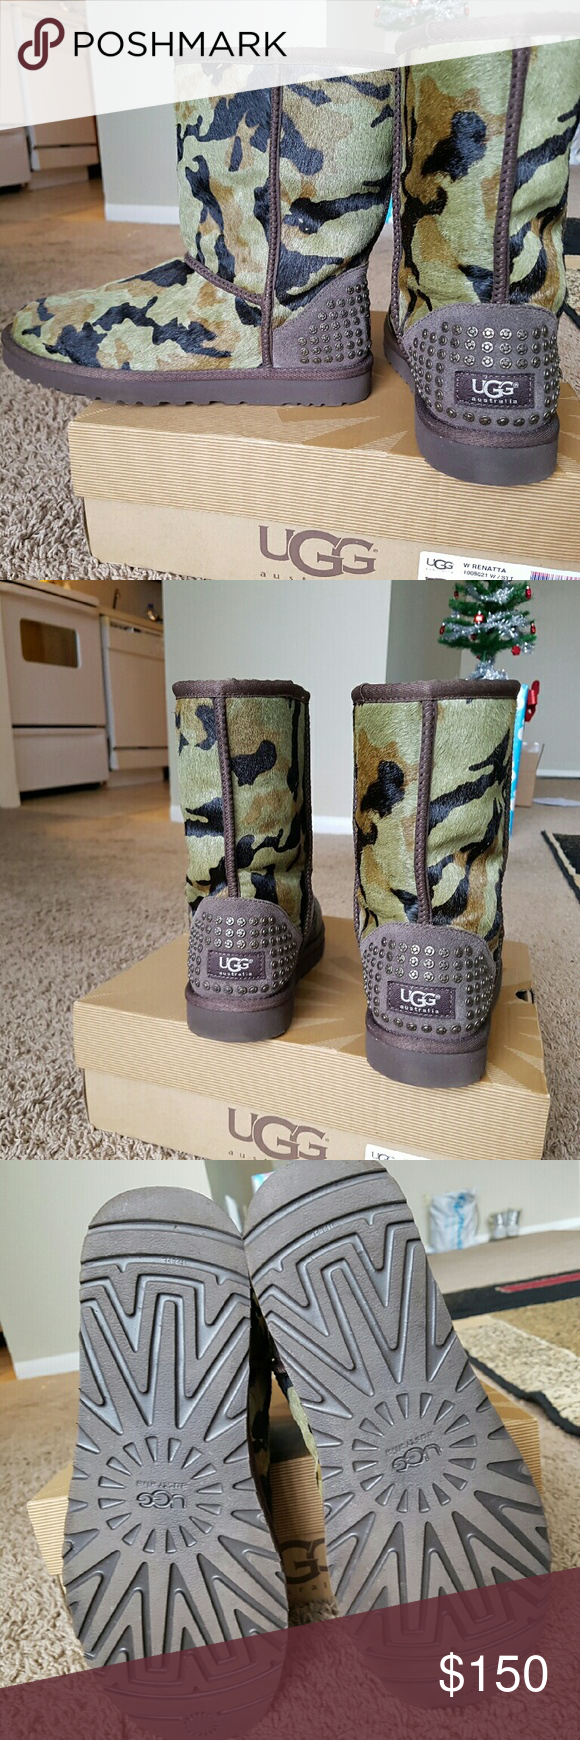 209ca2fe721 Authentic Women's Green Camo UGG boots Green army fatigue inspired ...